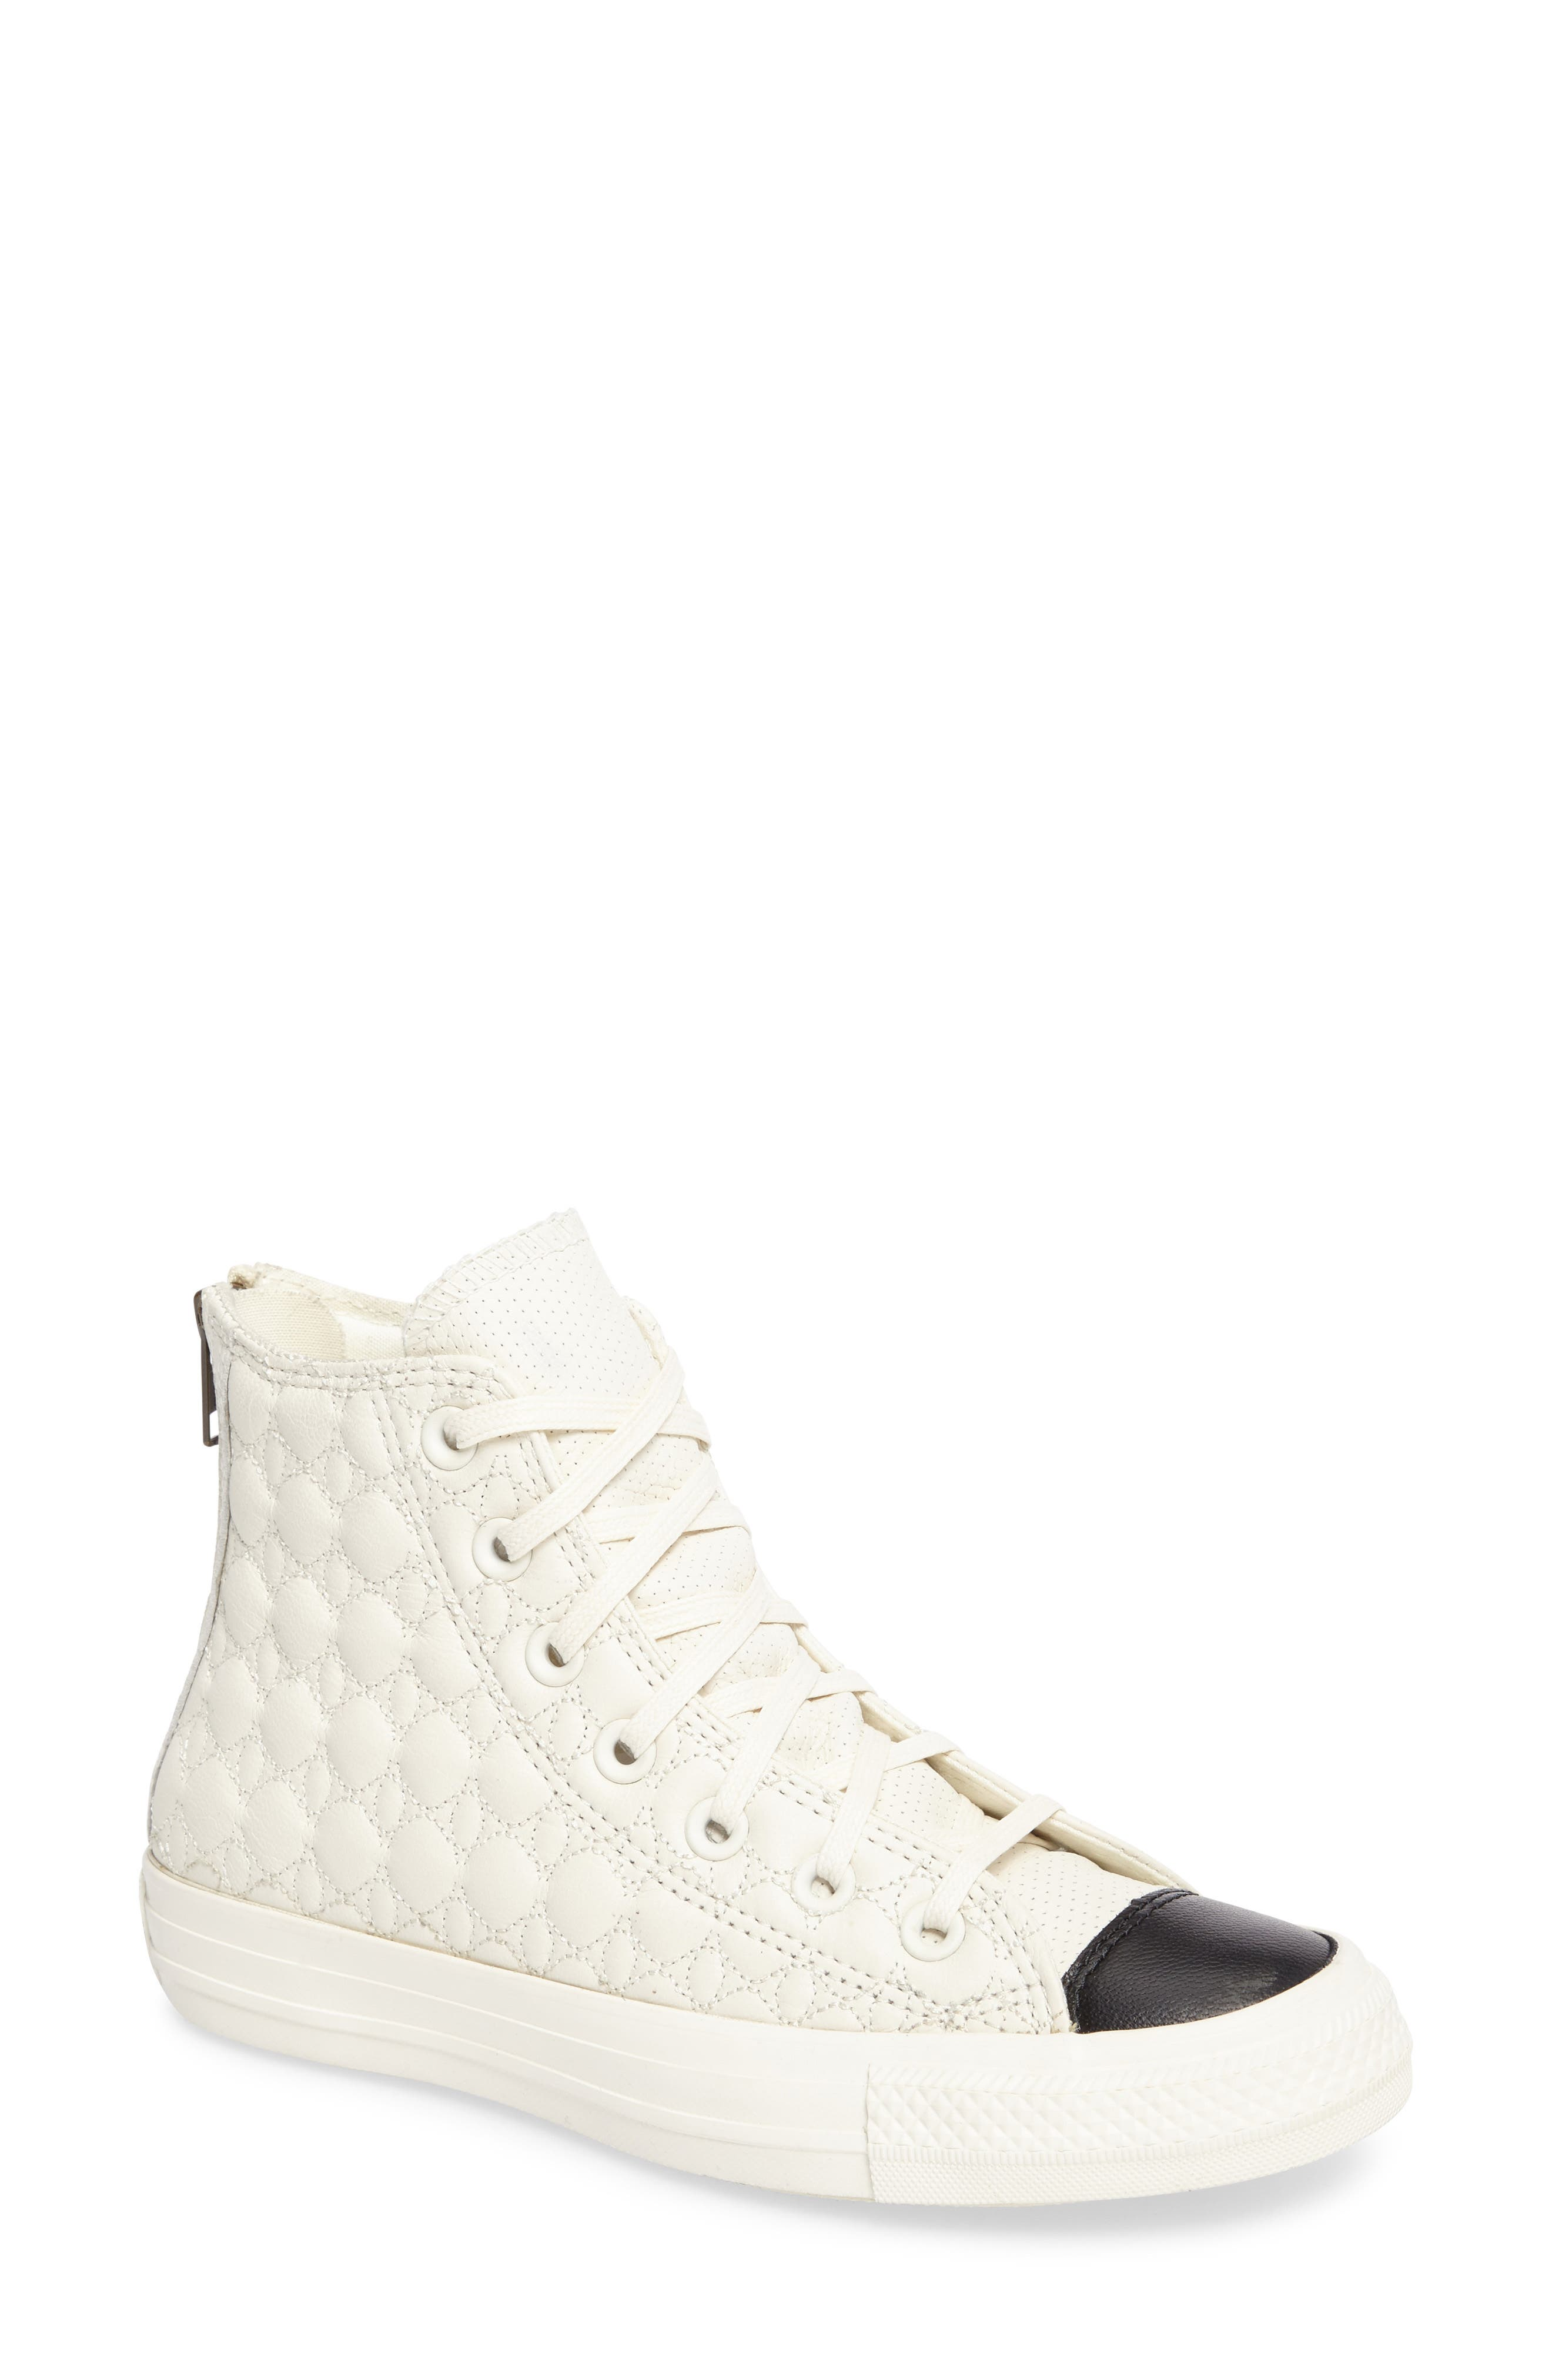 All Star<sup>®</sup> Quilted High Top Sneaker,                         Main,                         color,